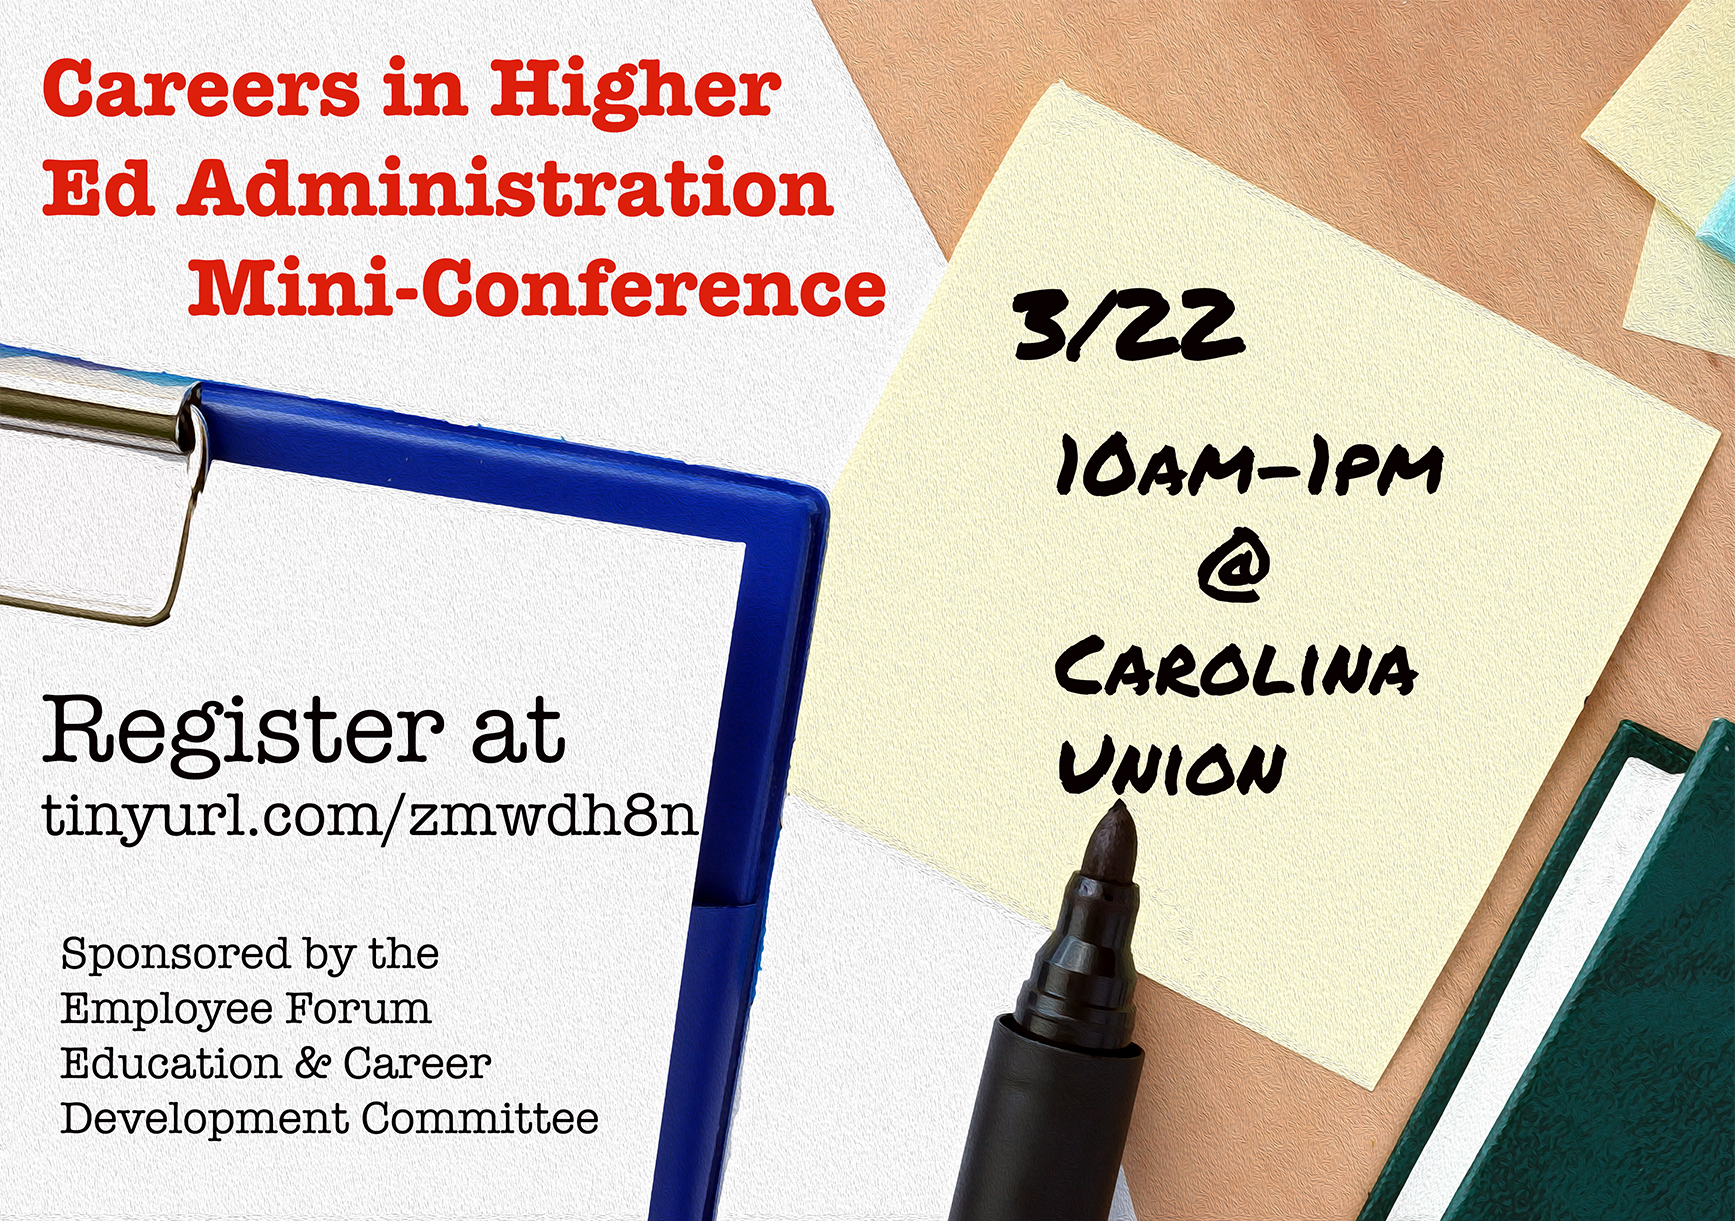 Forum holding Careers in Higher Ed Admin Mini-Conference